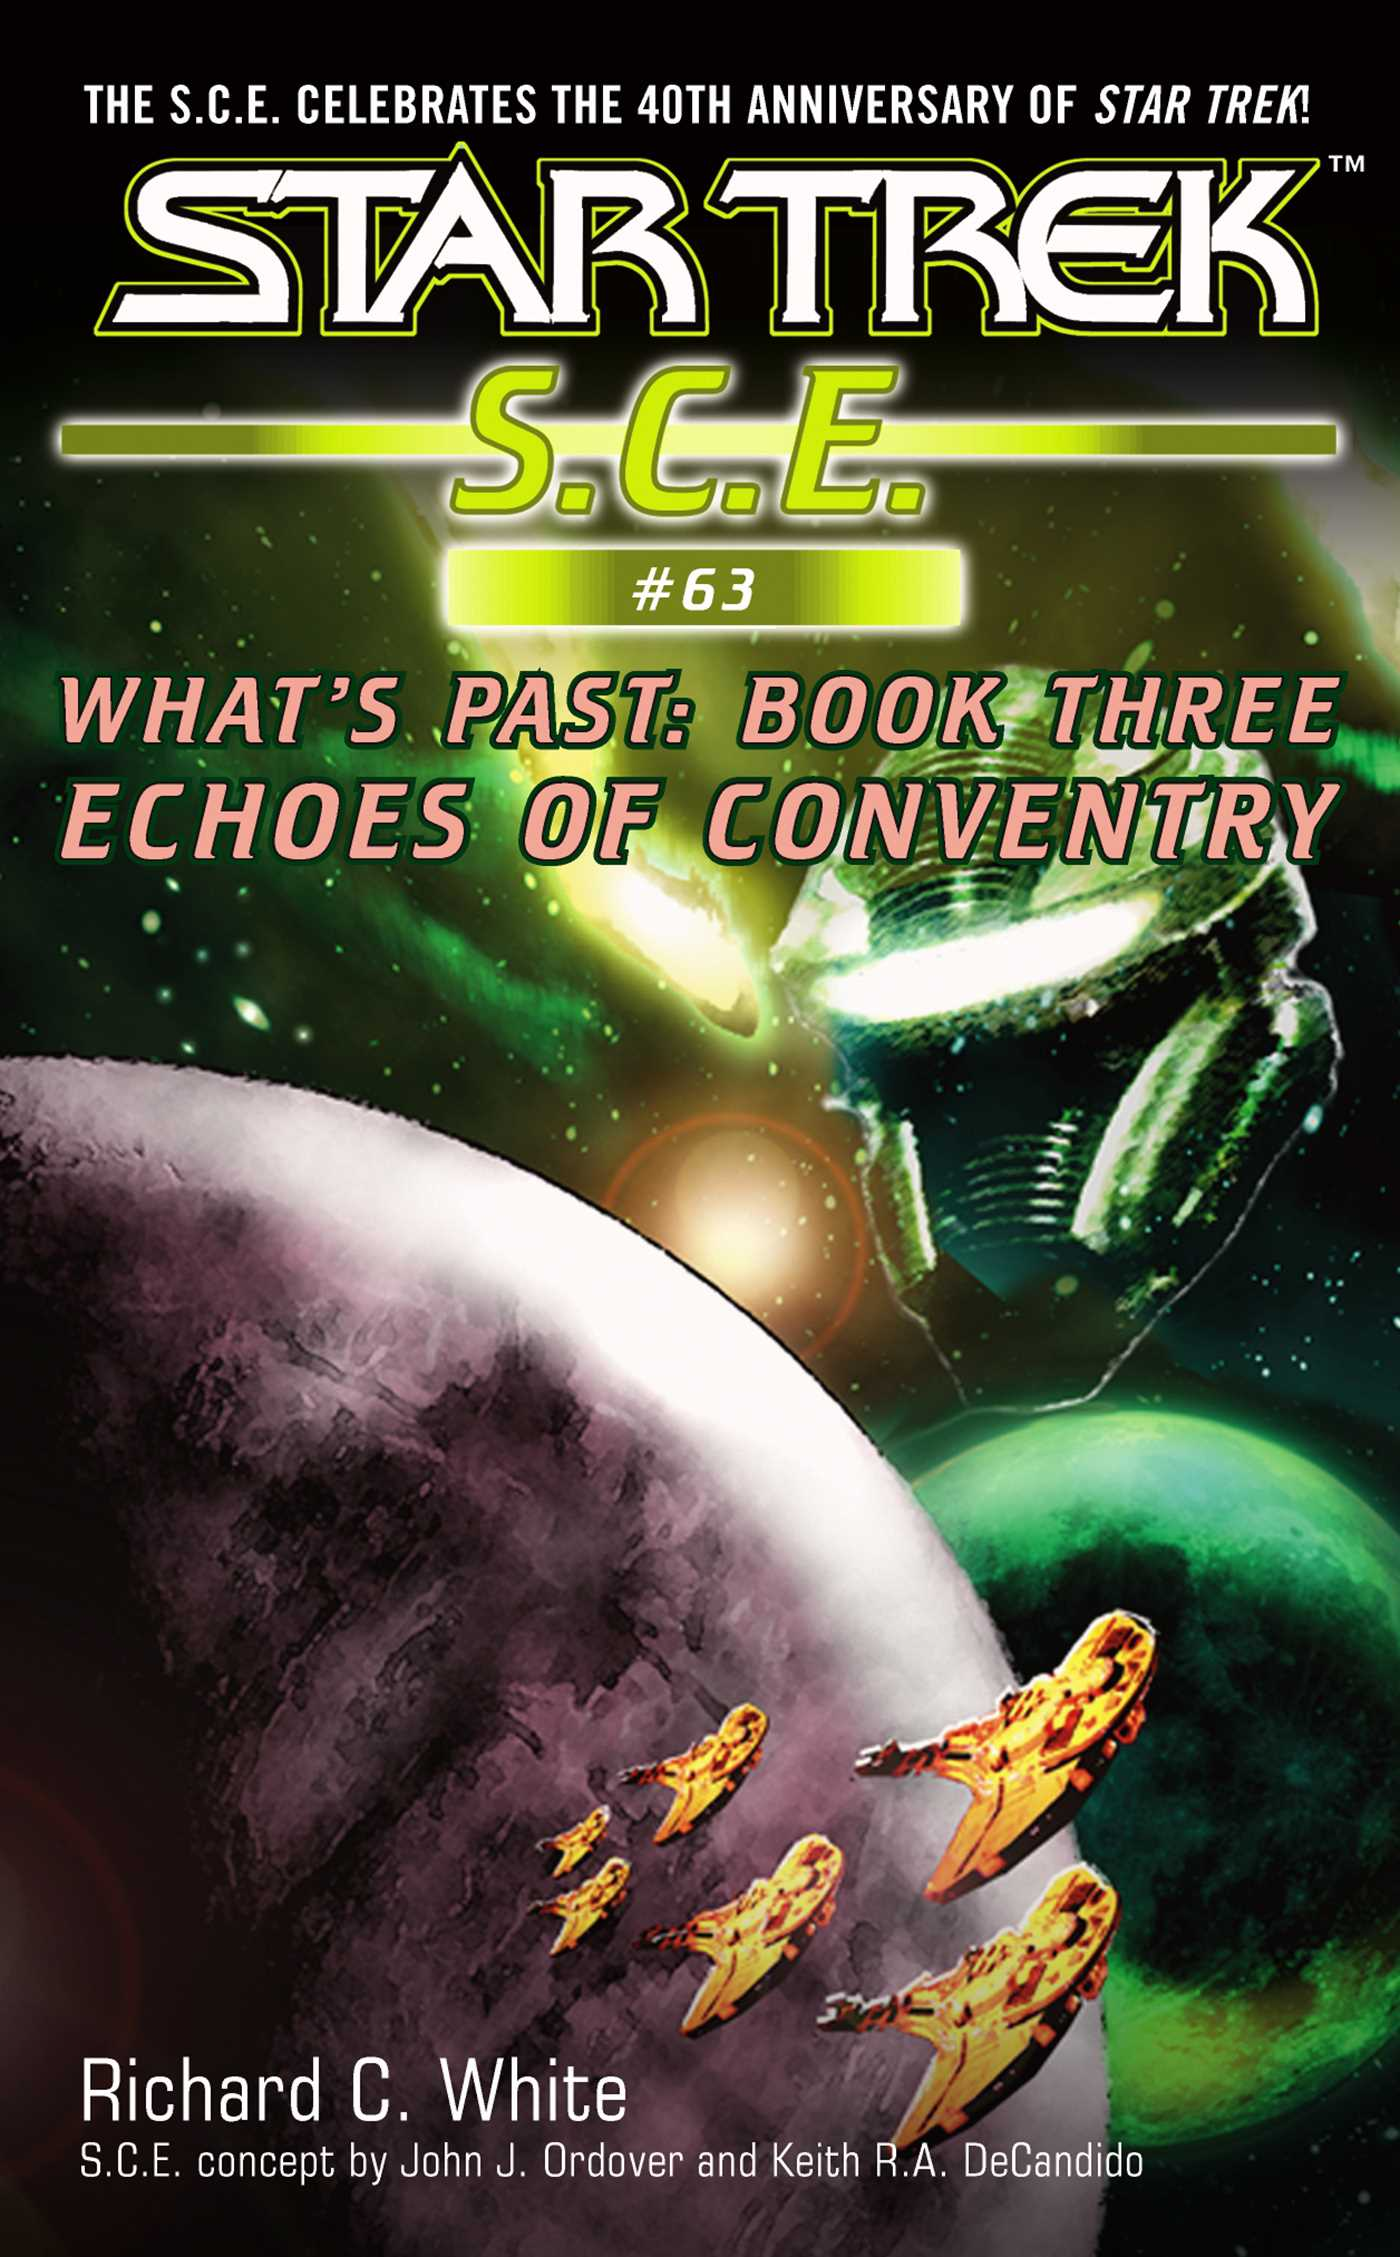 Star-trek-echoes-of-coventry-9781416520474_hr